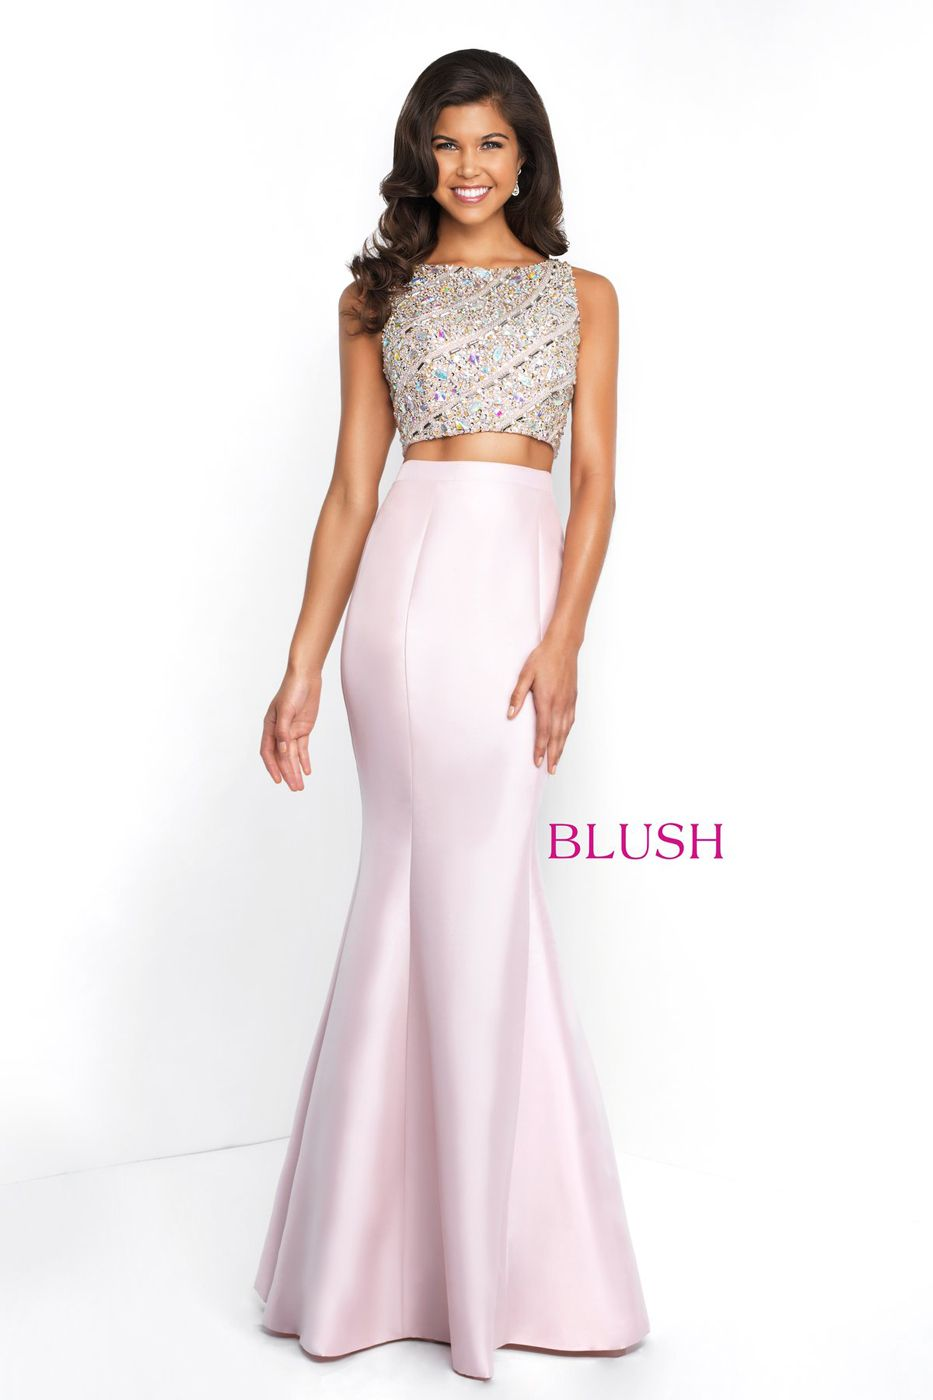 This Blush C1079 Shimmer Mikado Two Piece Prom Dress Pairs A Sleeveless Beaded Croptop With A Bateau Neckline And A Fu Blush Prom Gowns Blush Prom Dress [ 1400 x 933 Pixel ]